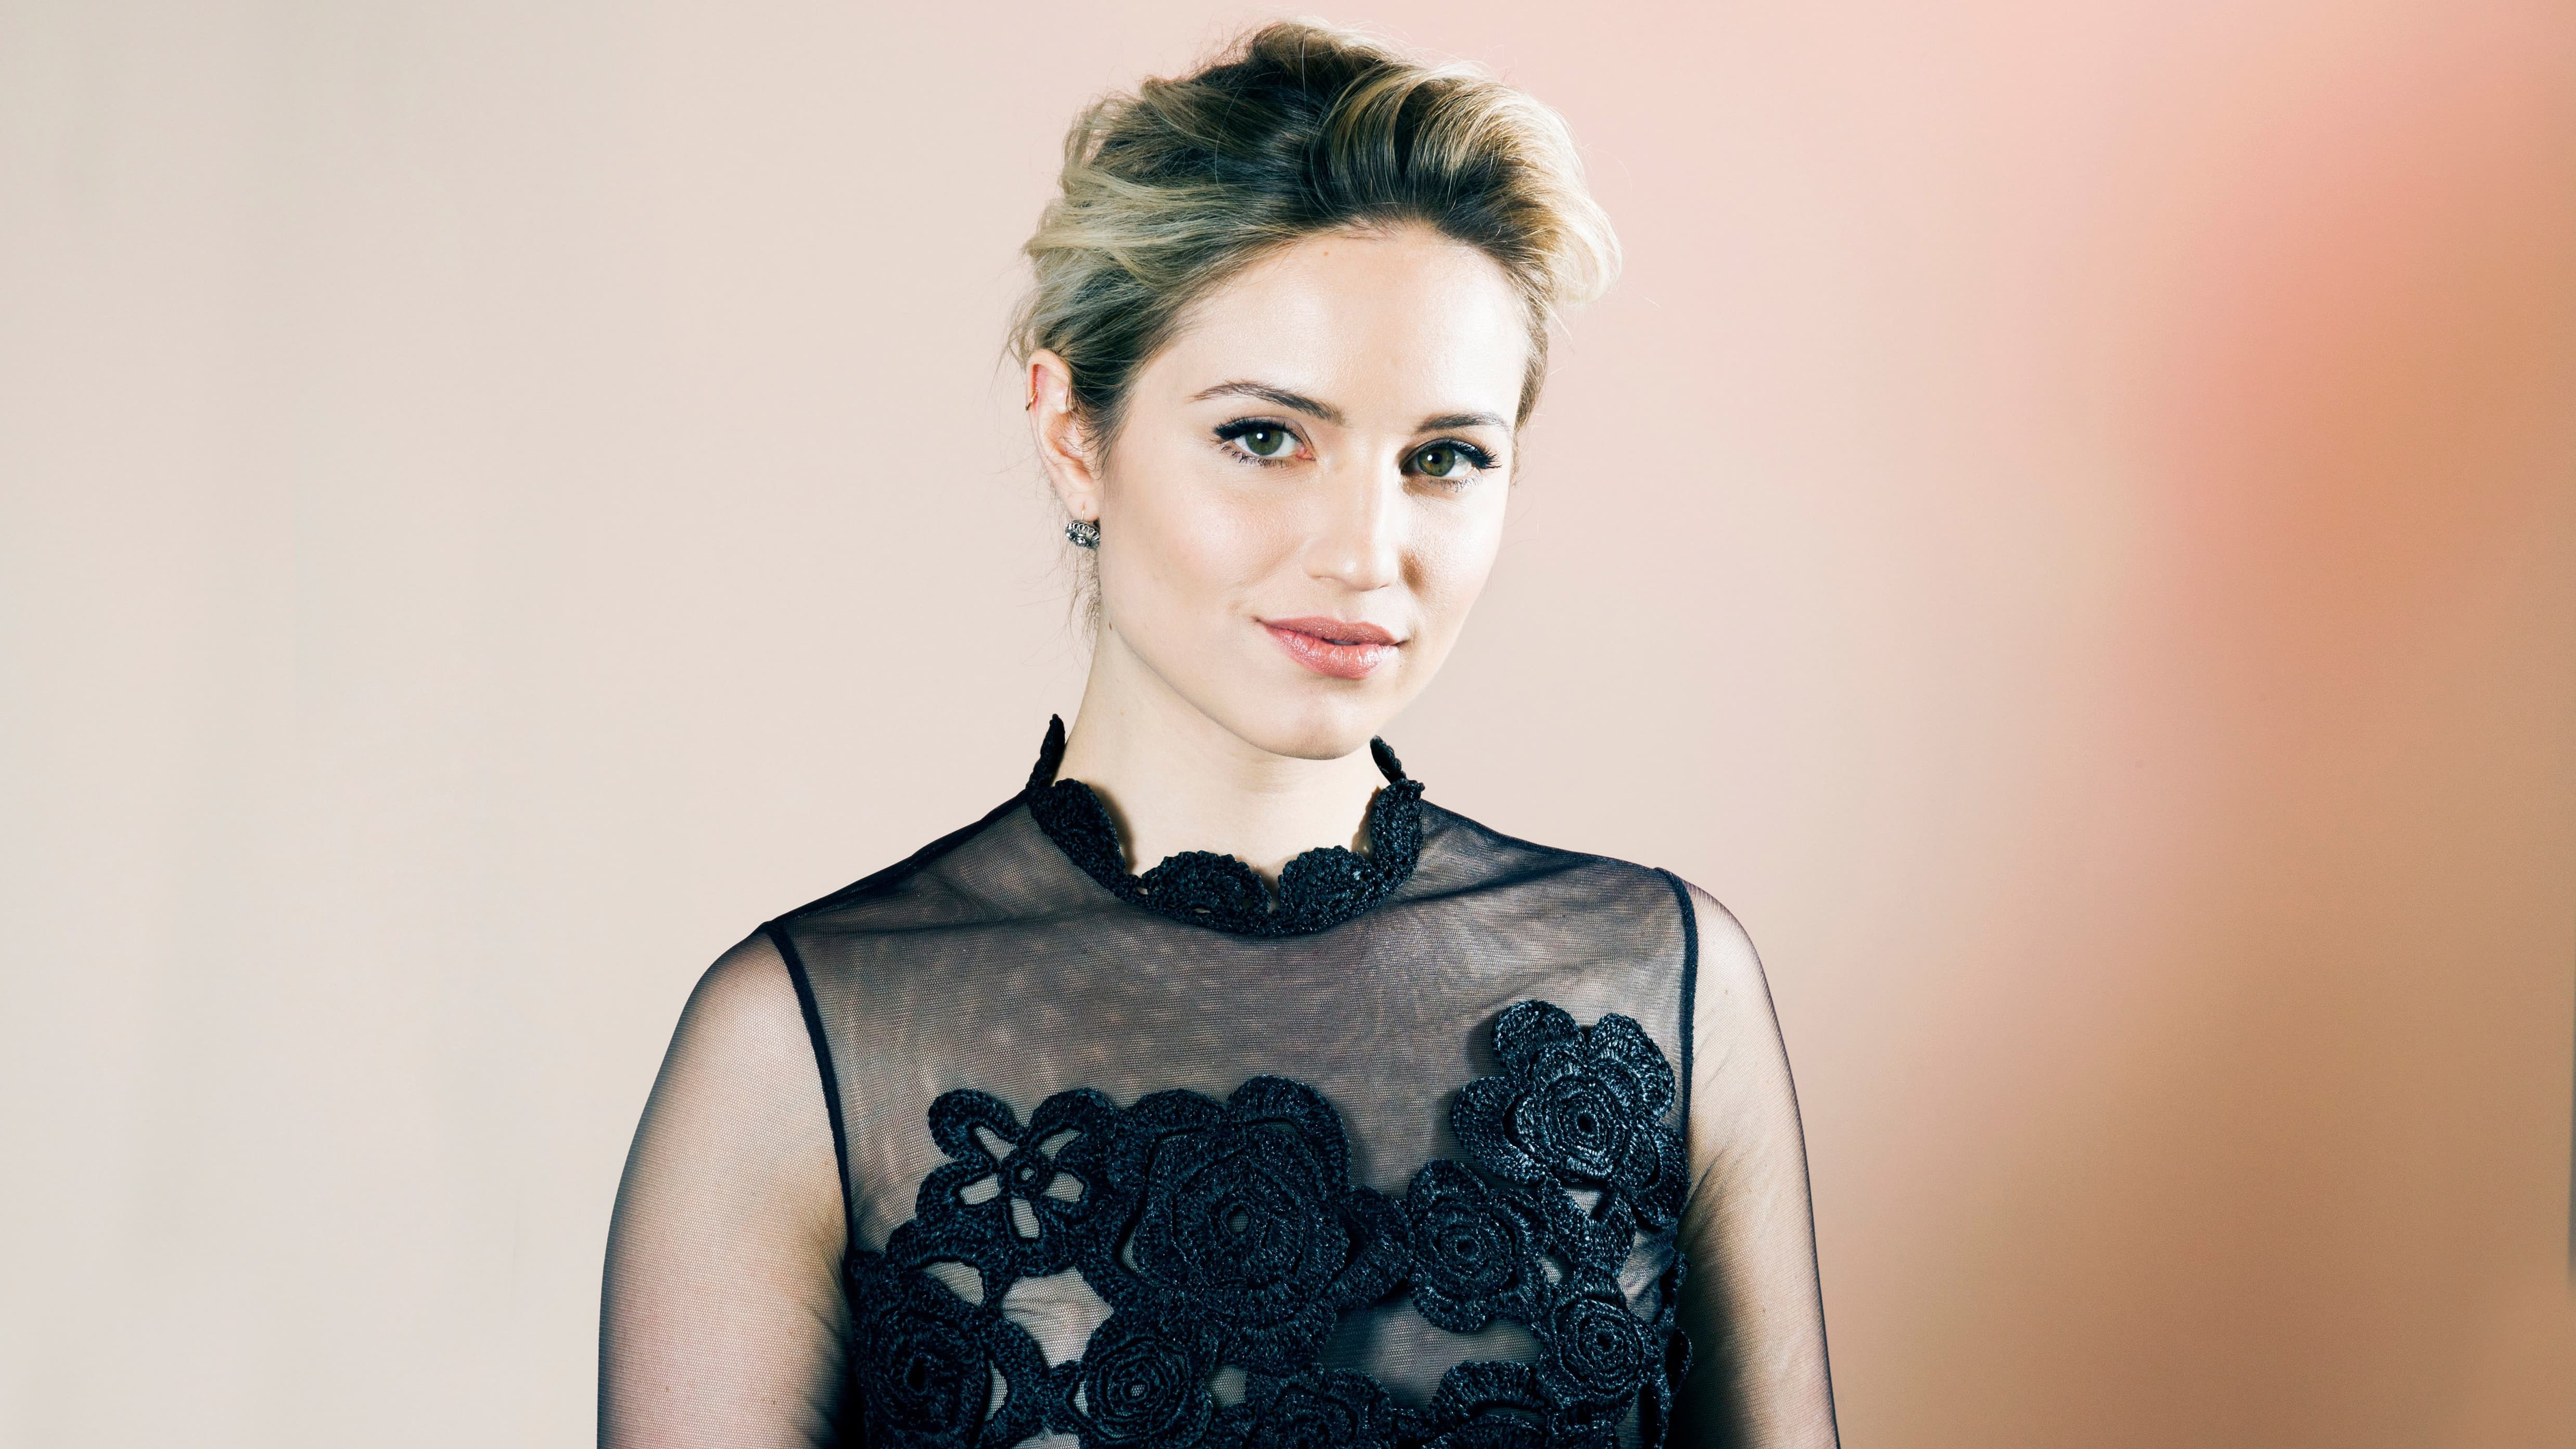 Pictures Of Dianna Agron